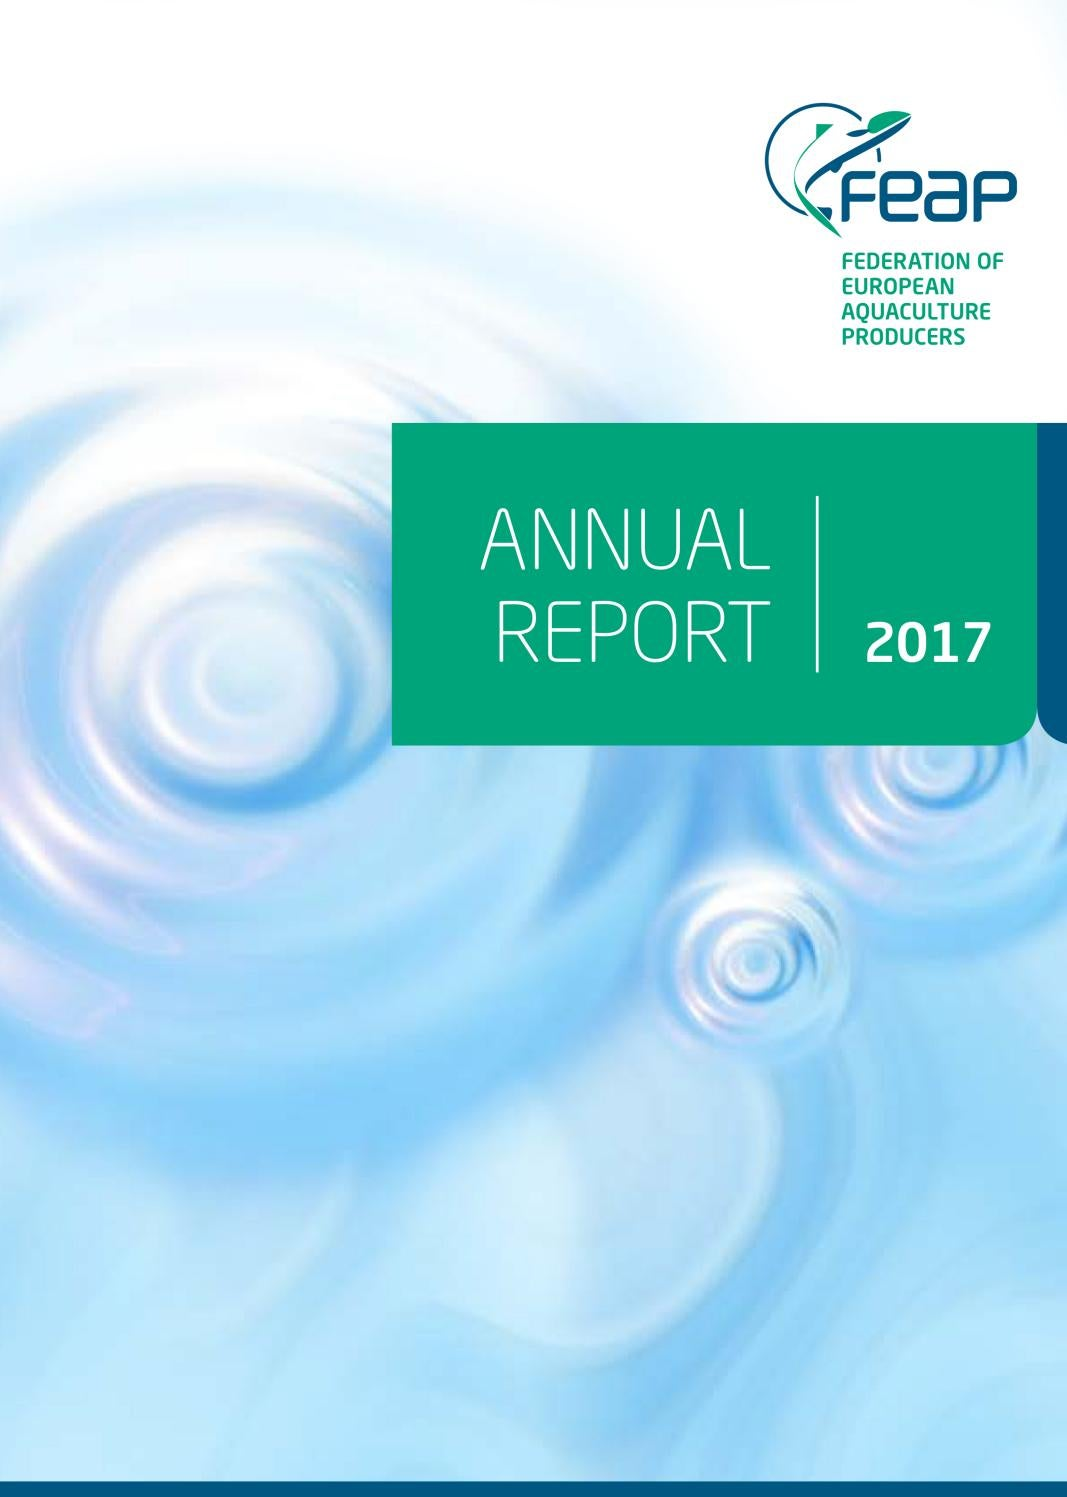 FEAP ANNUAL REPORT 2017 by FEAP - issuu